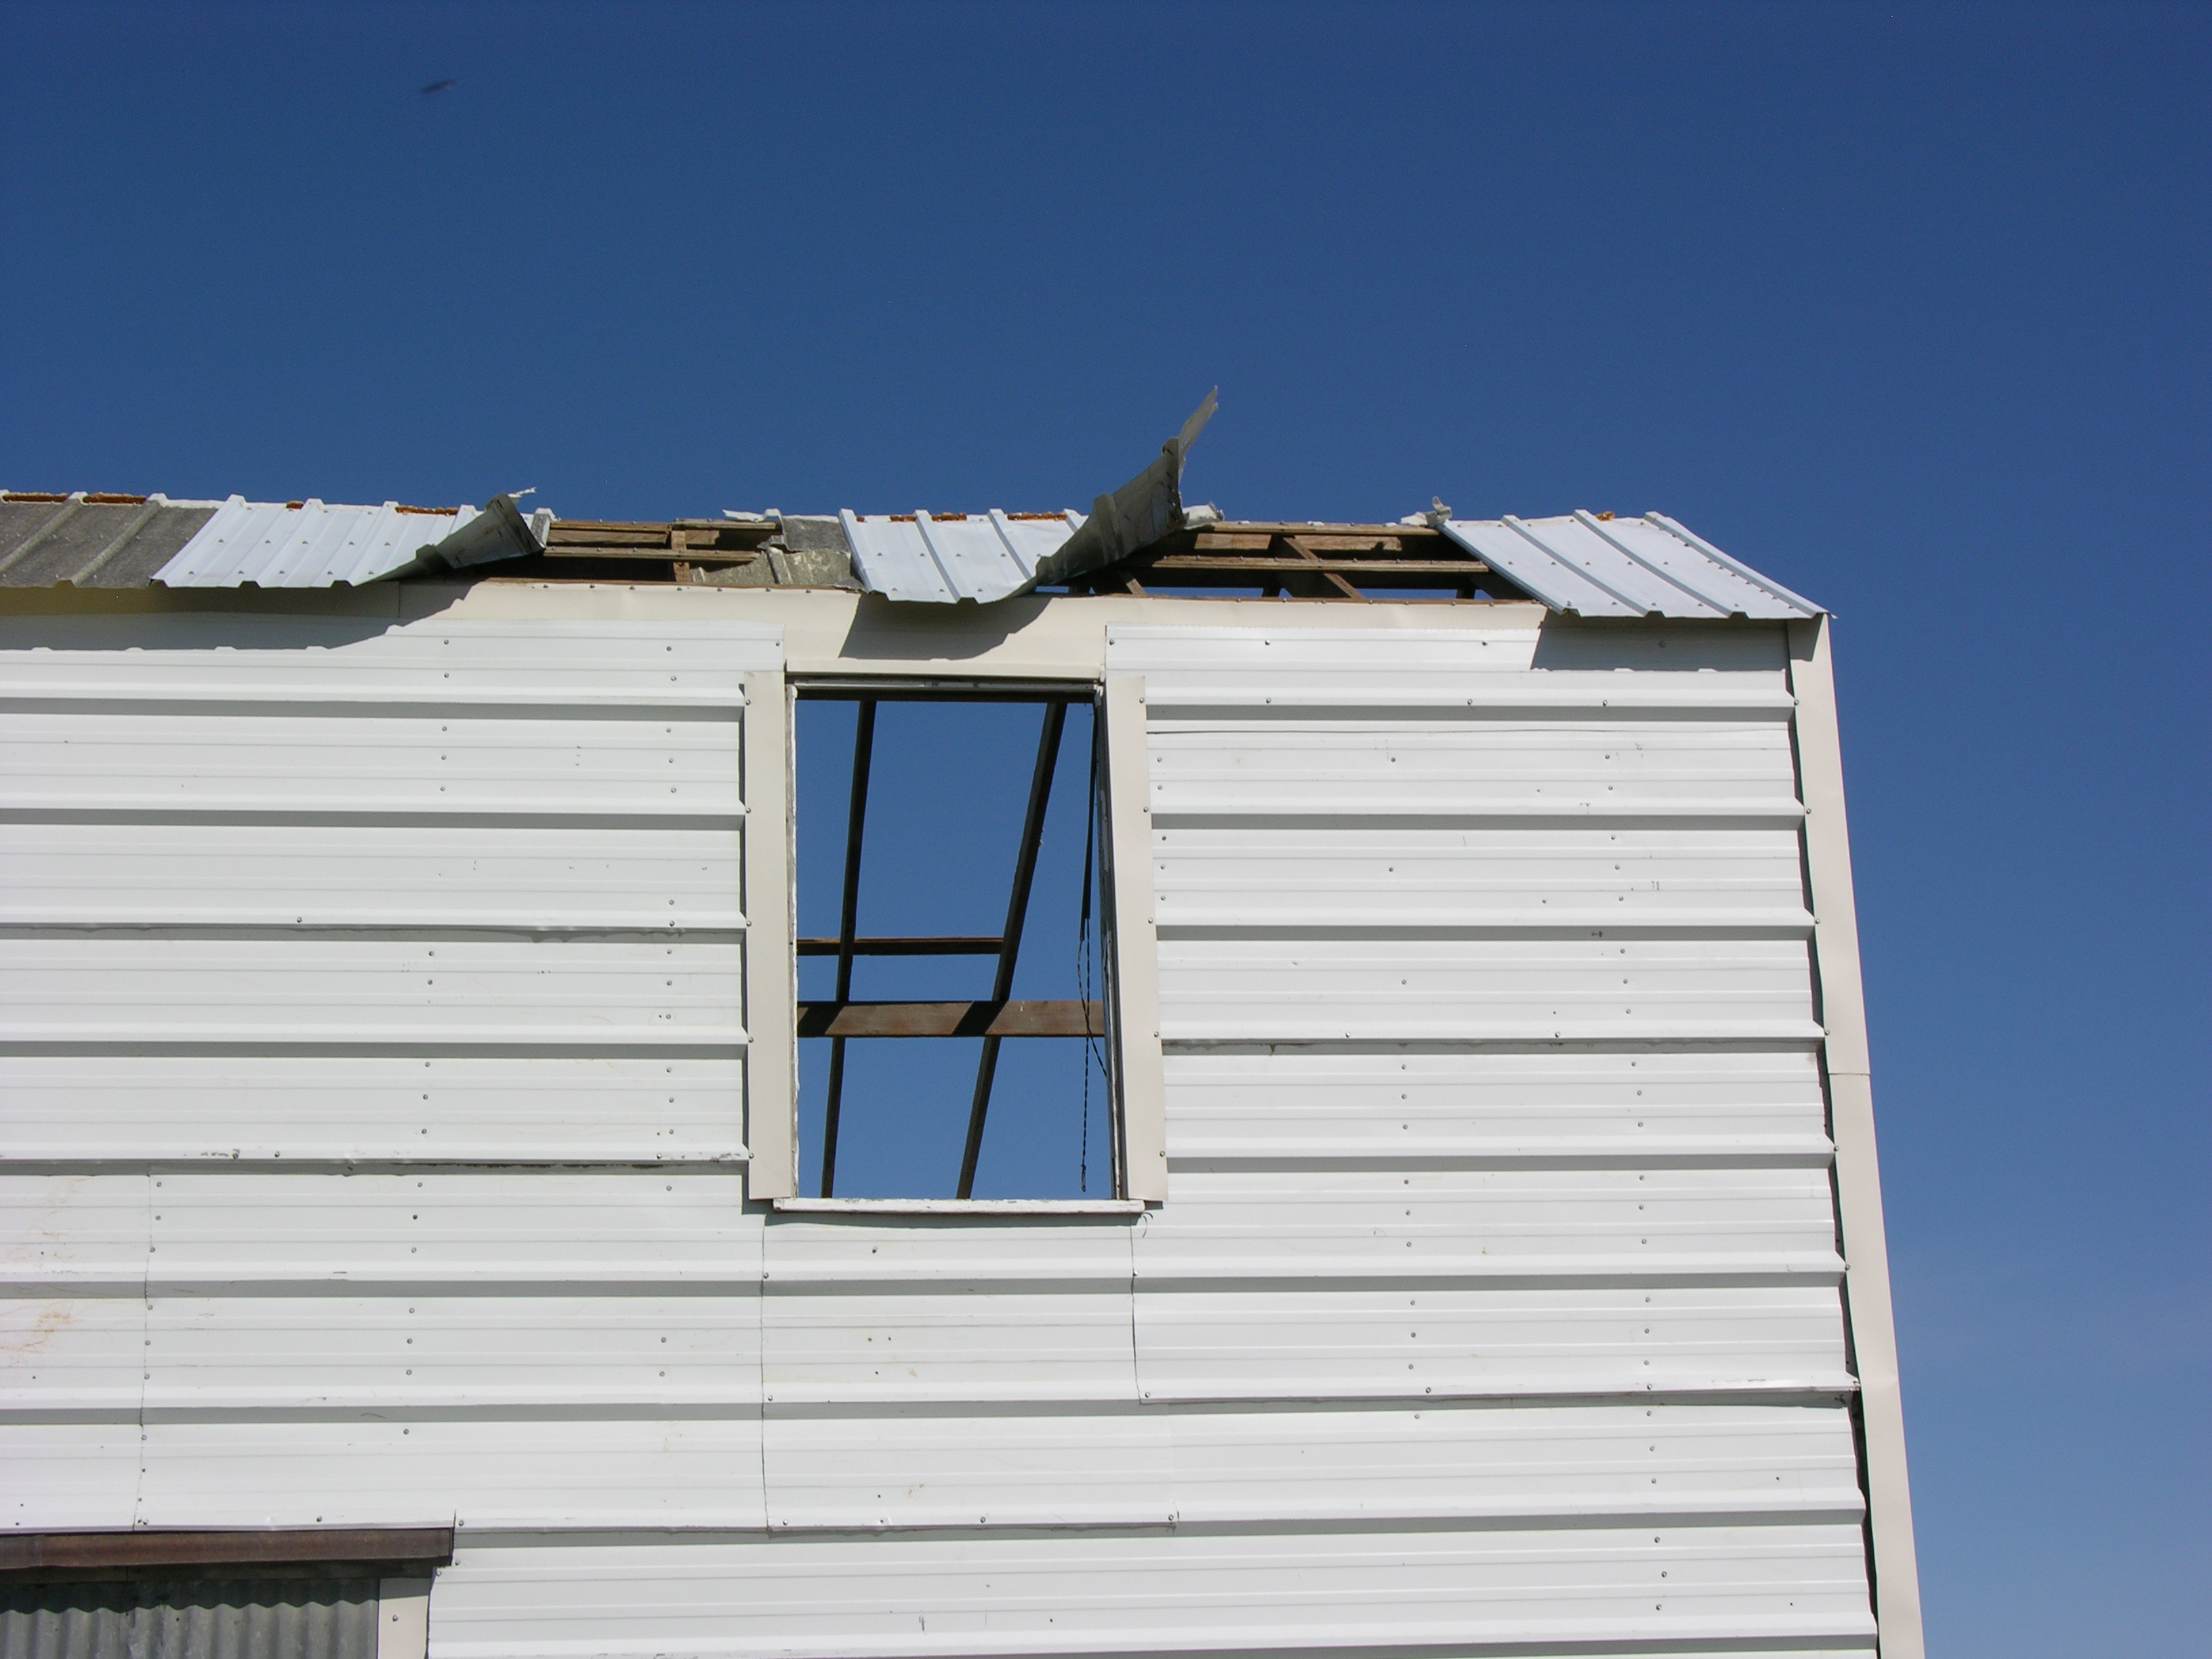 Kansas jewell county randall - Outbuilding Roof Removed From Ef0 Tornado In Jewell County Kansas On February 28 2012